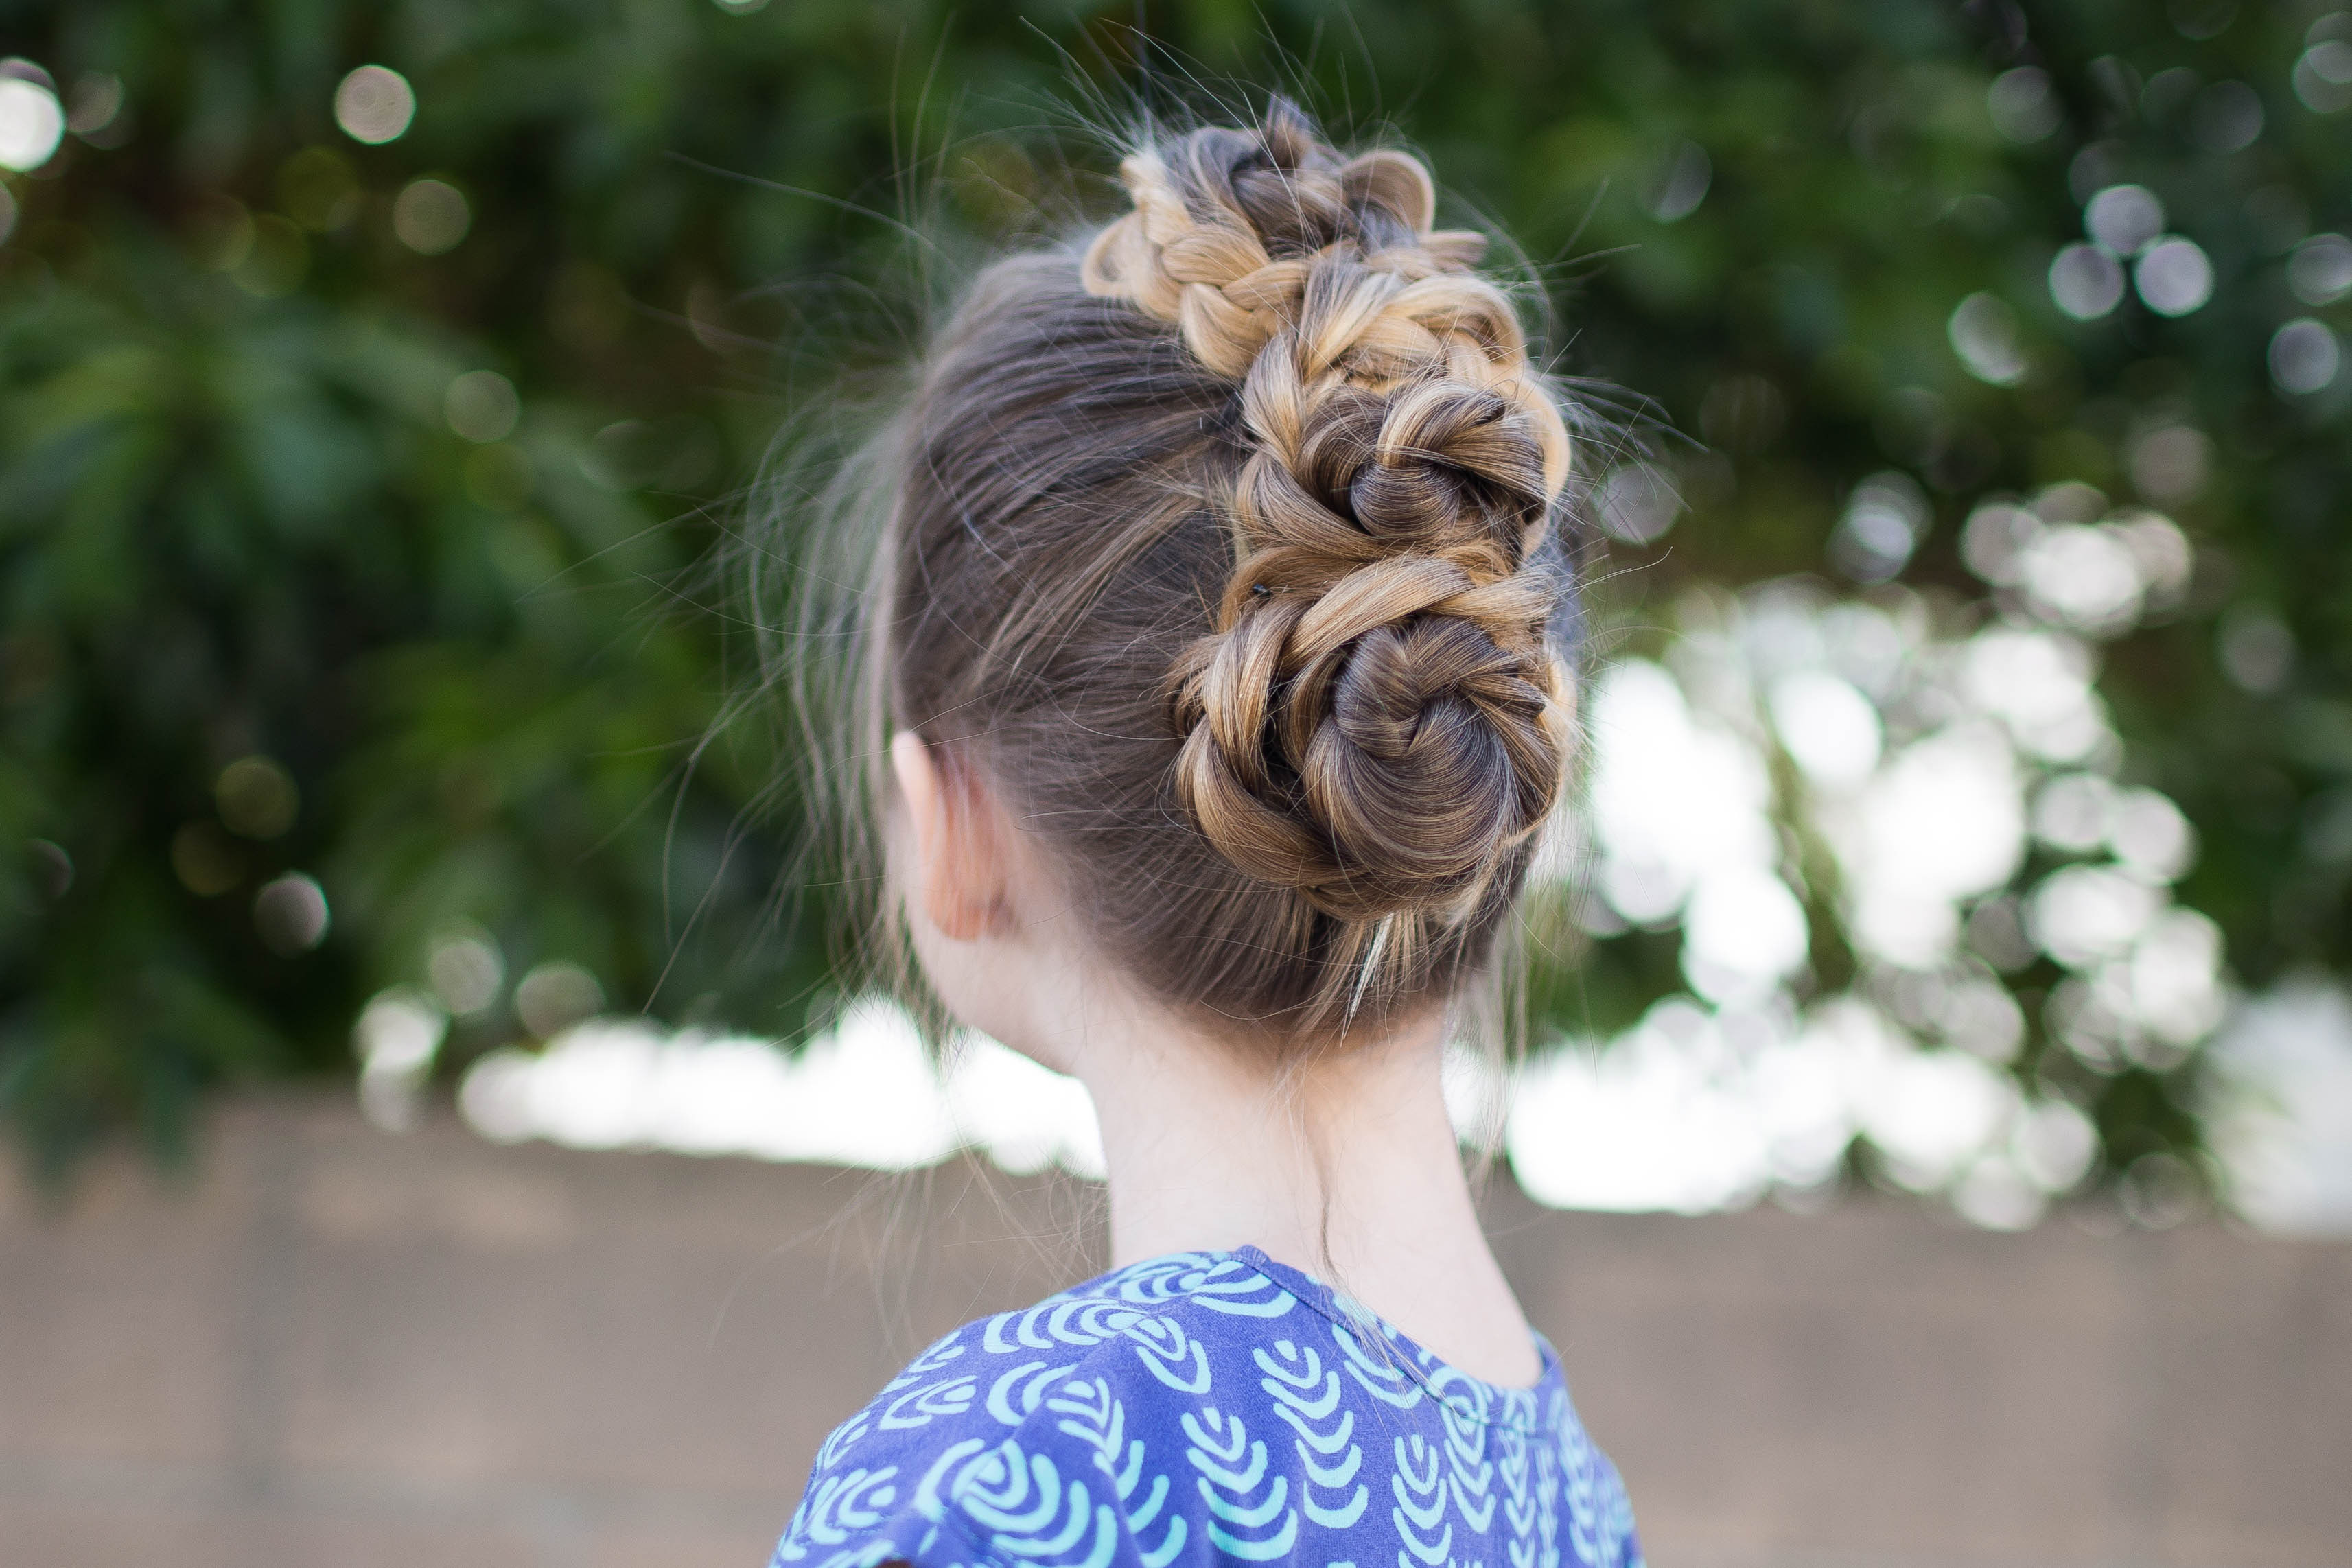 Best ideas about Bun Hairstyles For Girls . Save or Pin Triple Bun Updo Now.